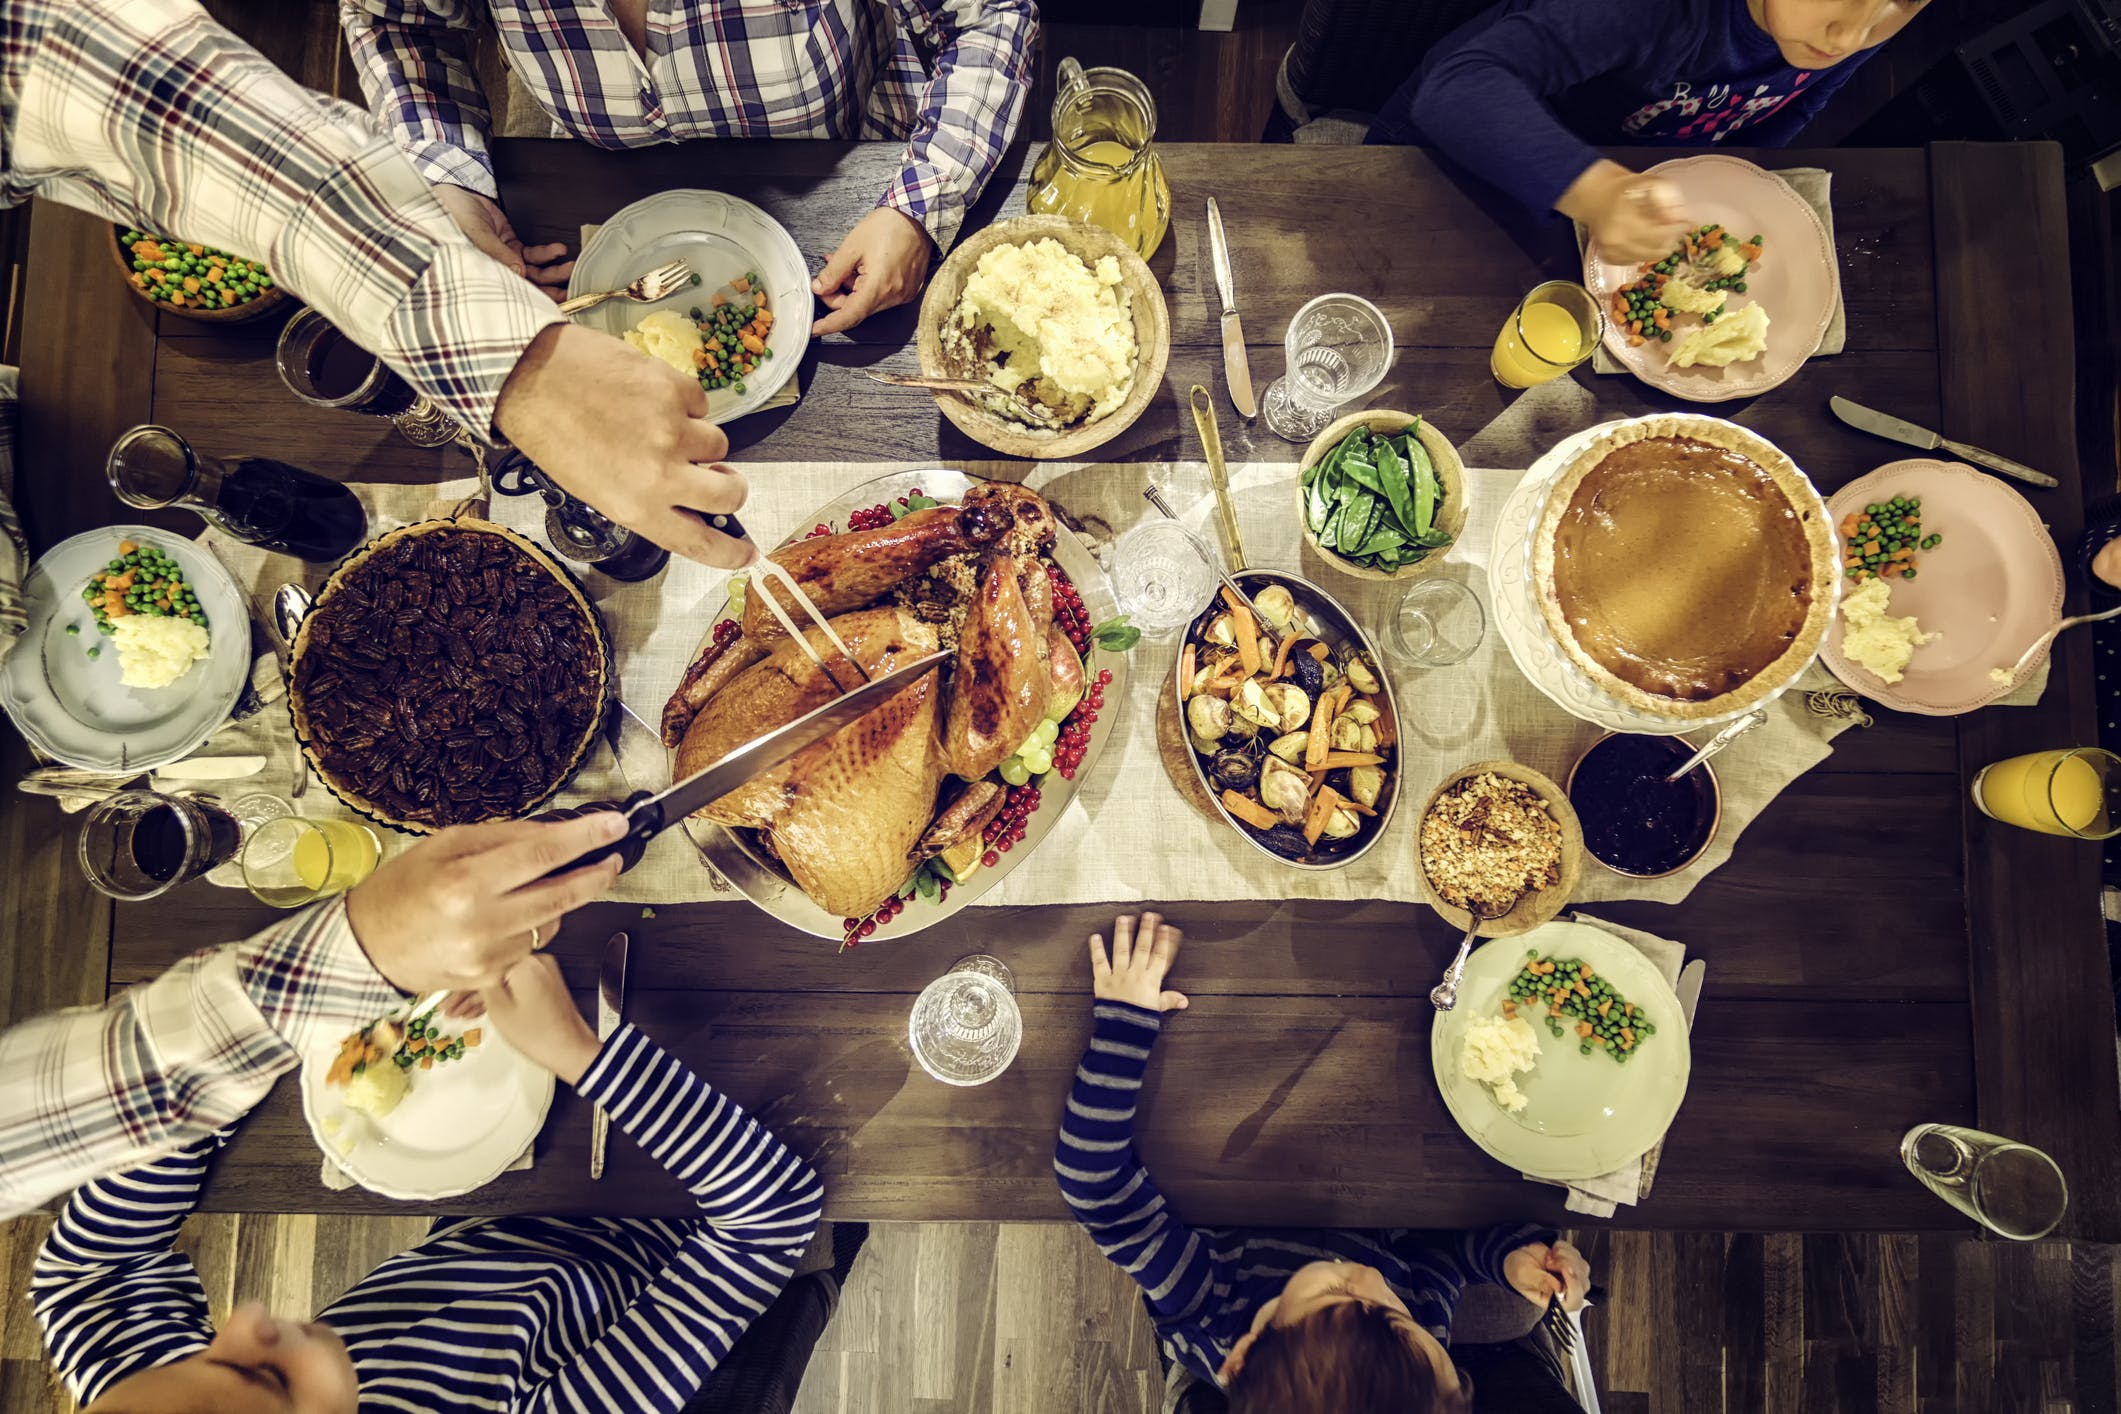 Turkey Day Tips to Keep You from Tipping the Scale